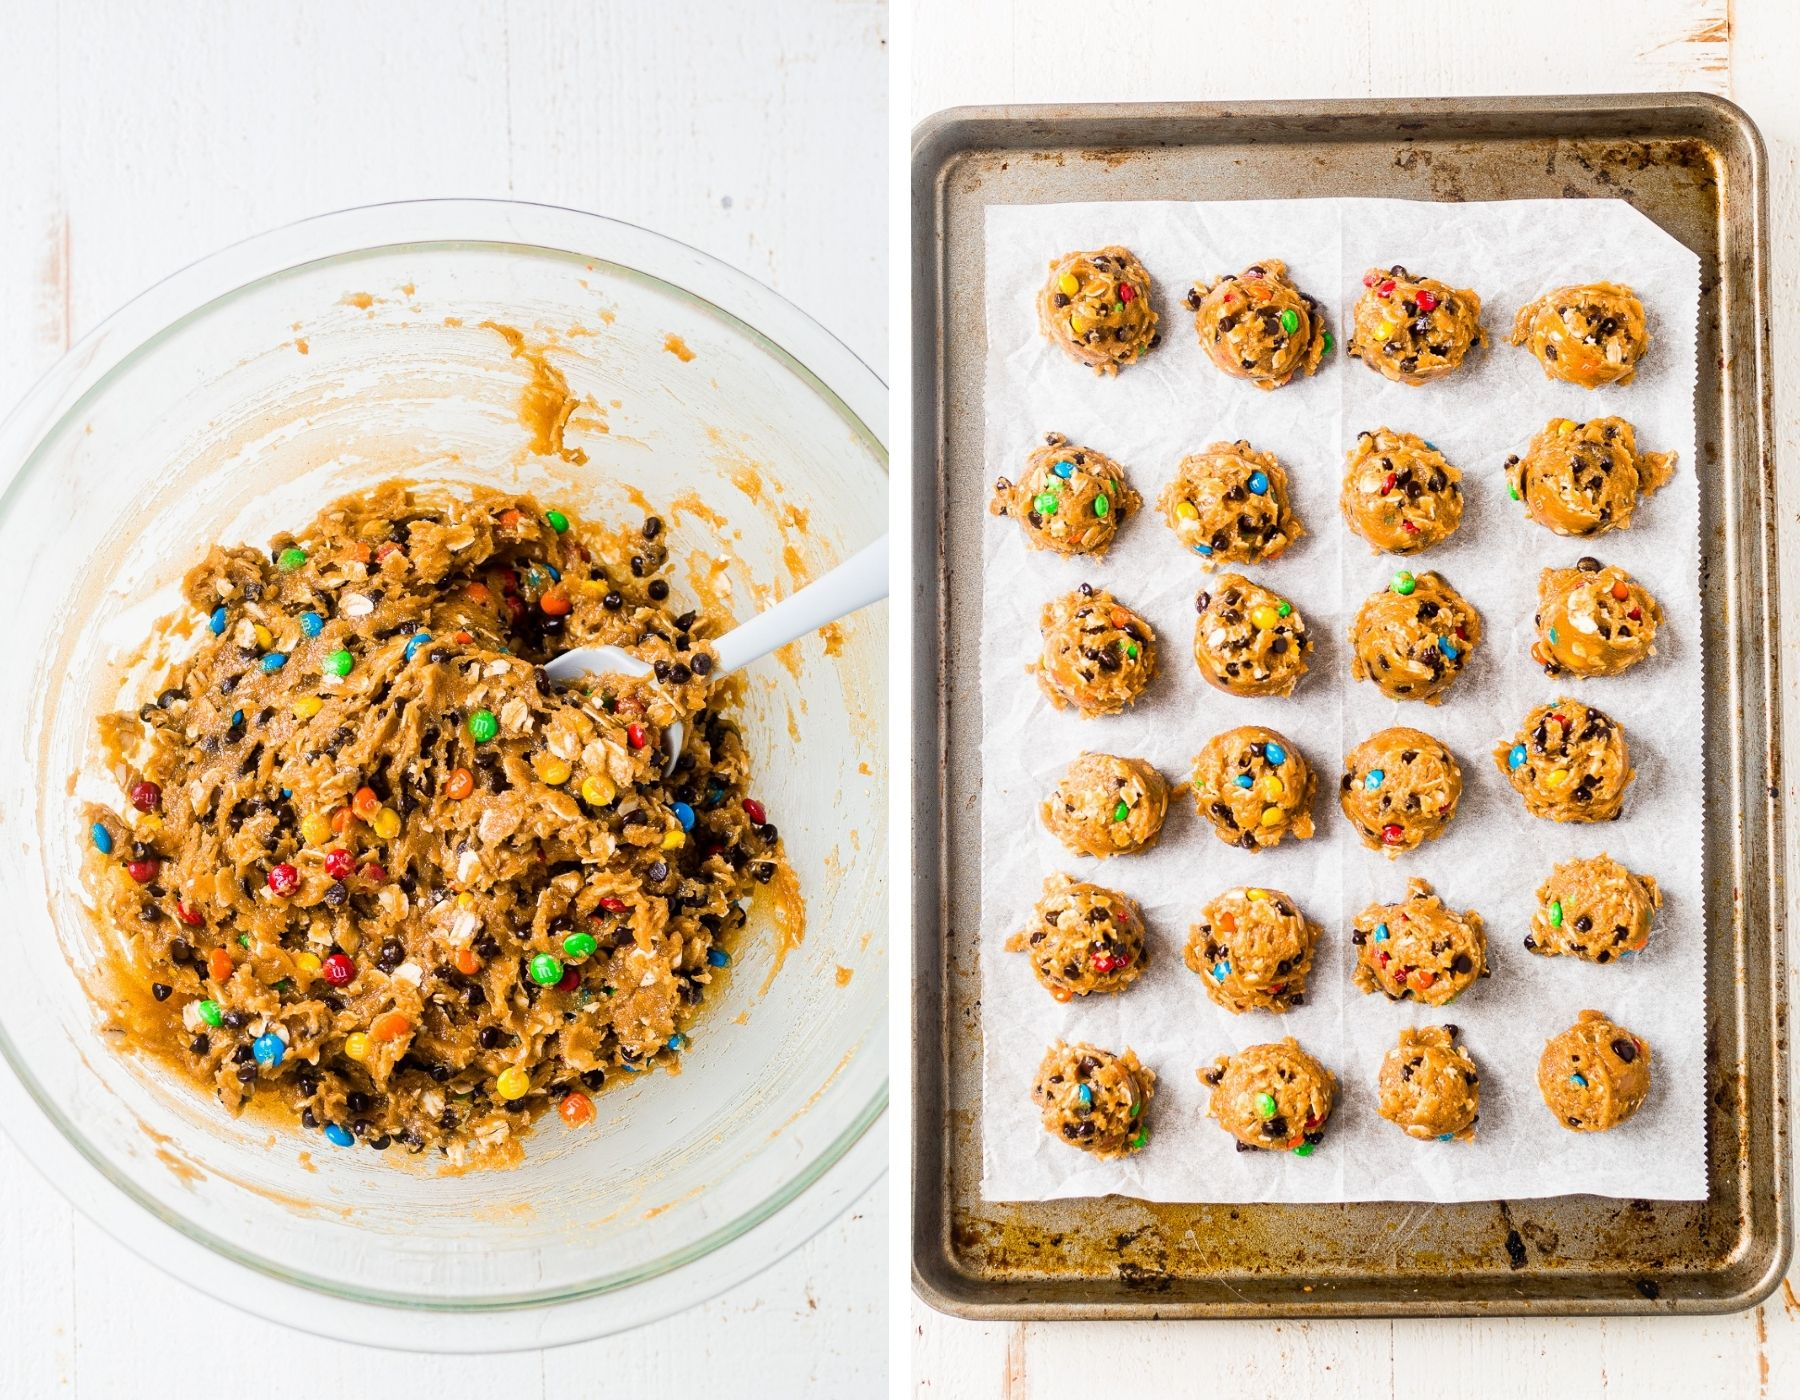 flourless monster cookie dough in a bowl with a spatula and a cookie sheet with the dough scooped into balls